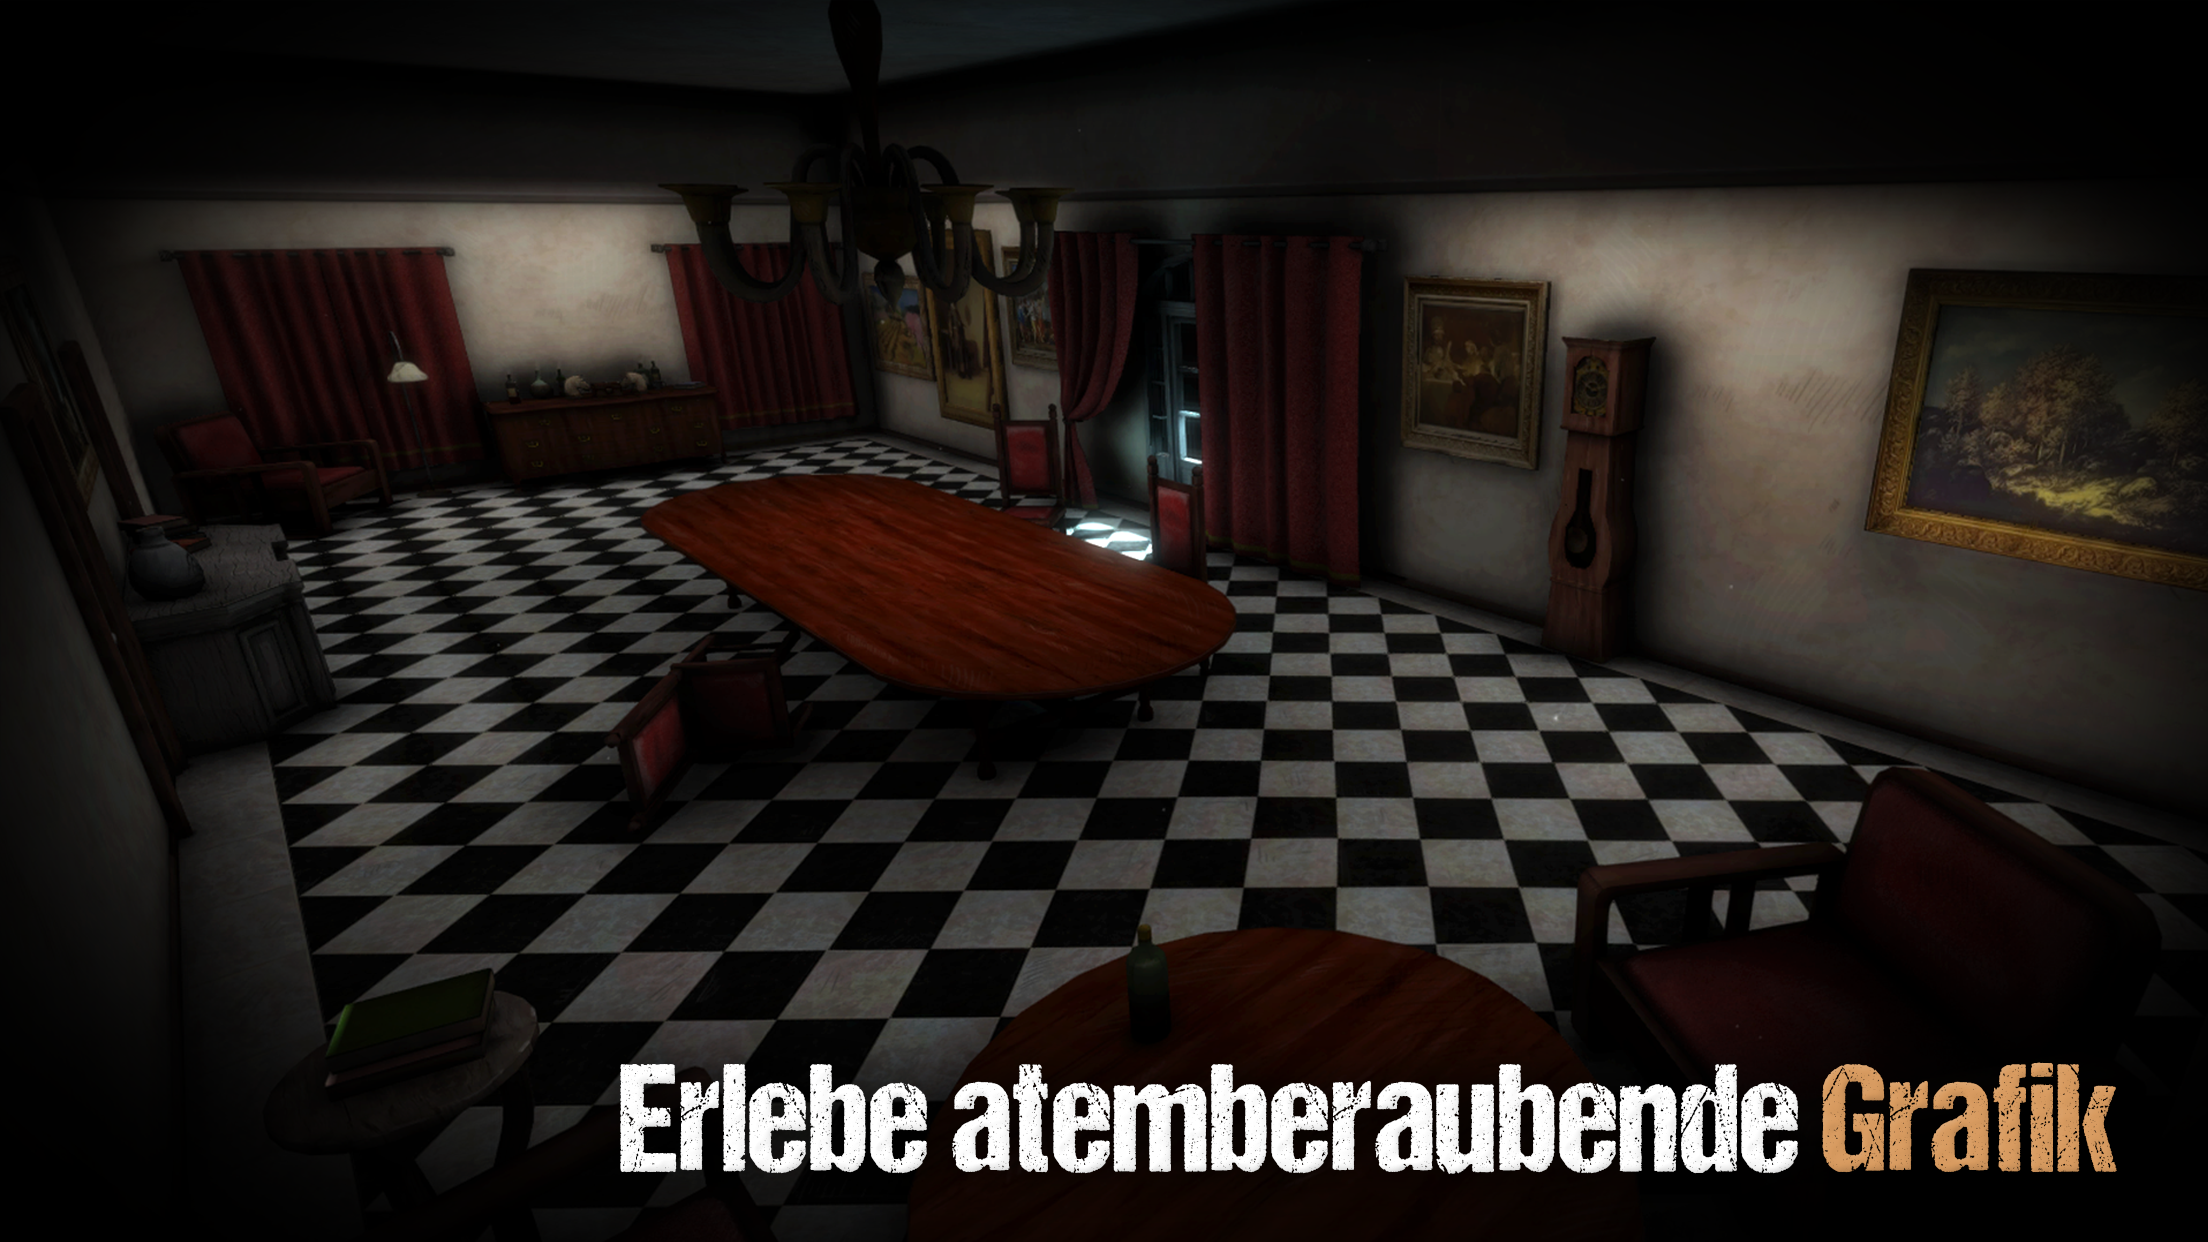 Sinister Edge 3D Horror Game Screenshot